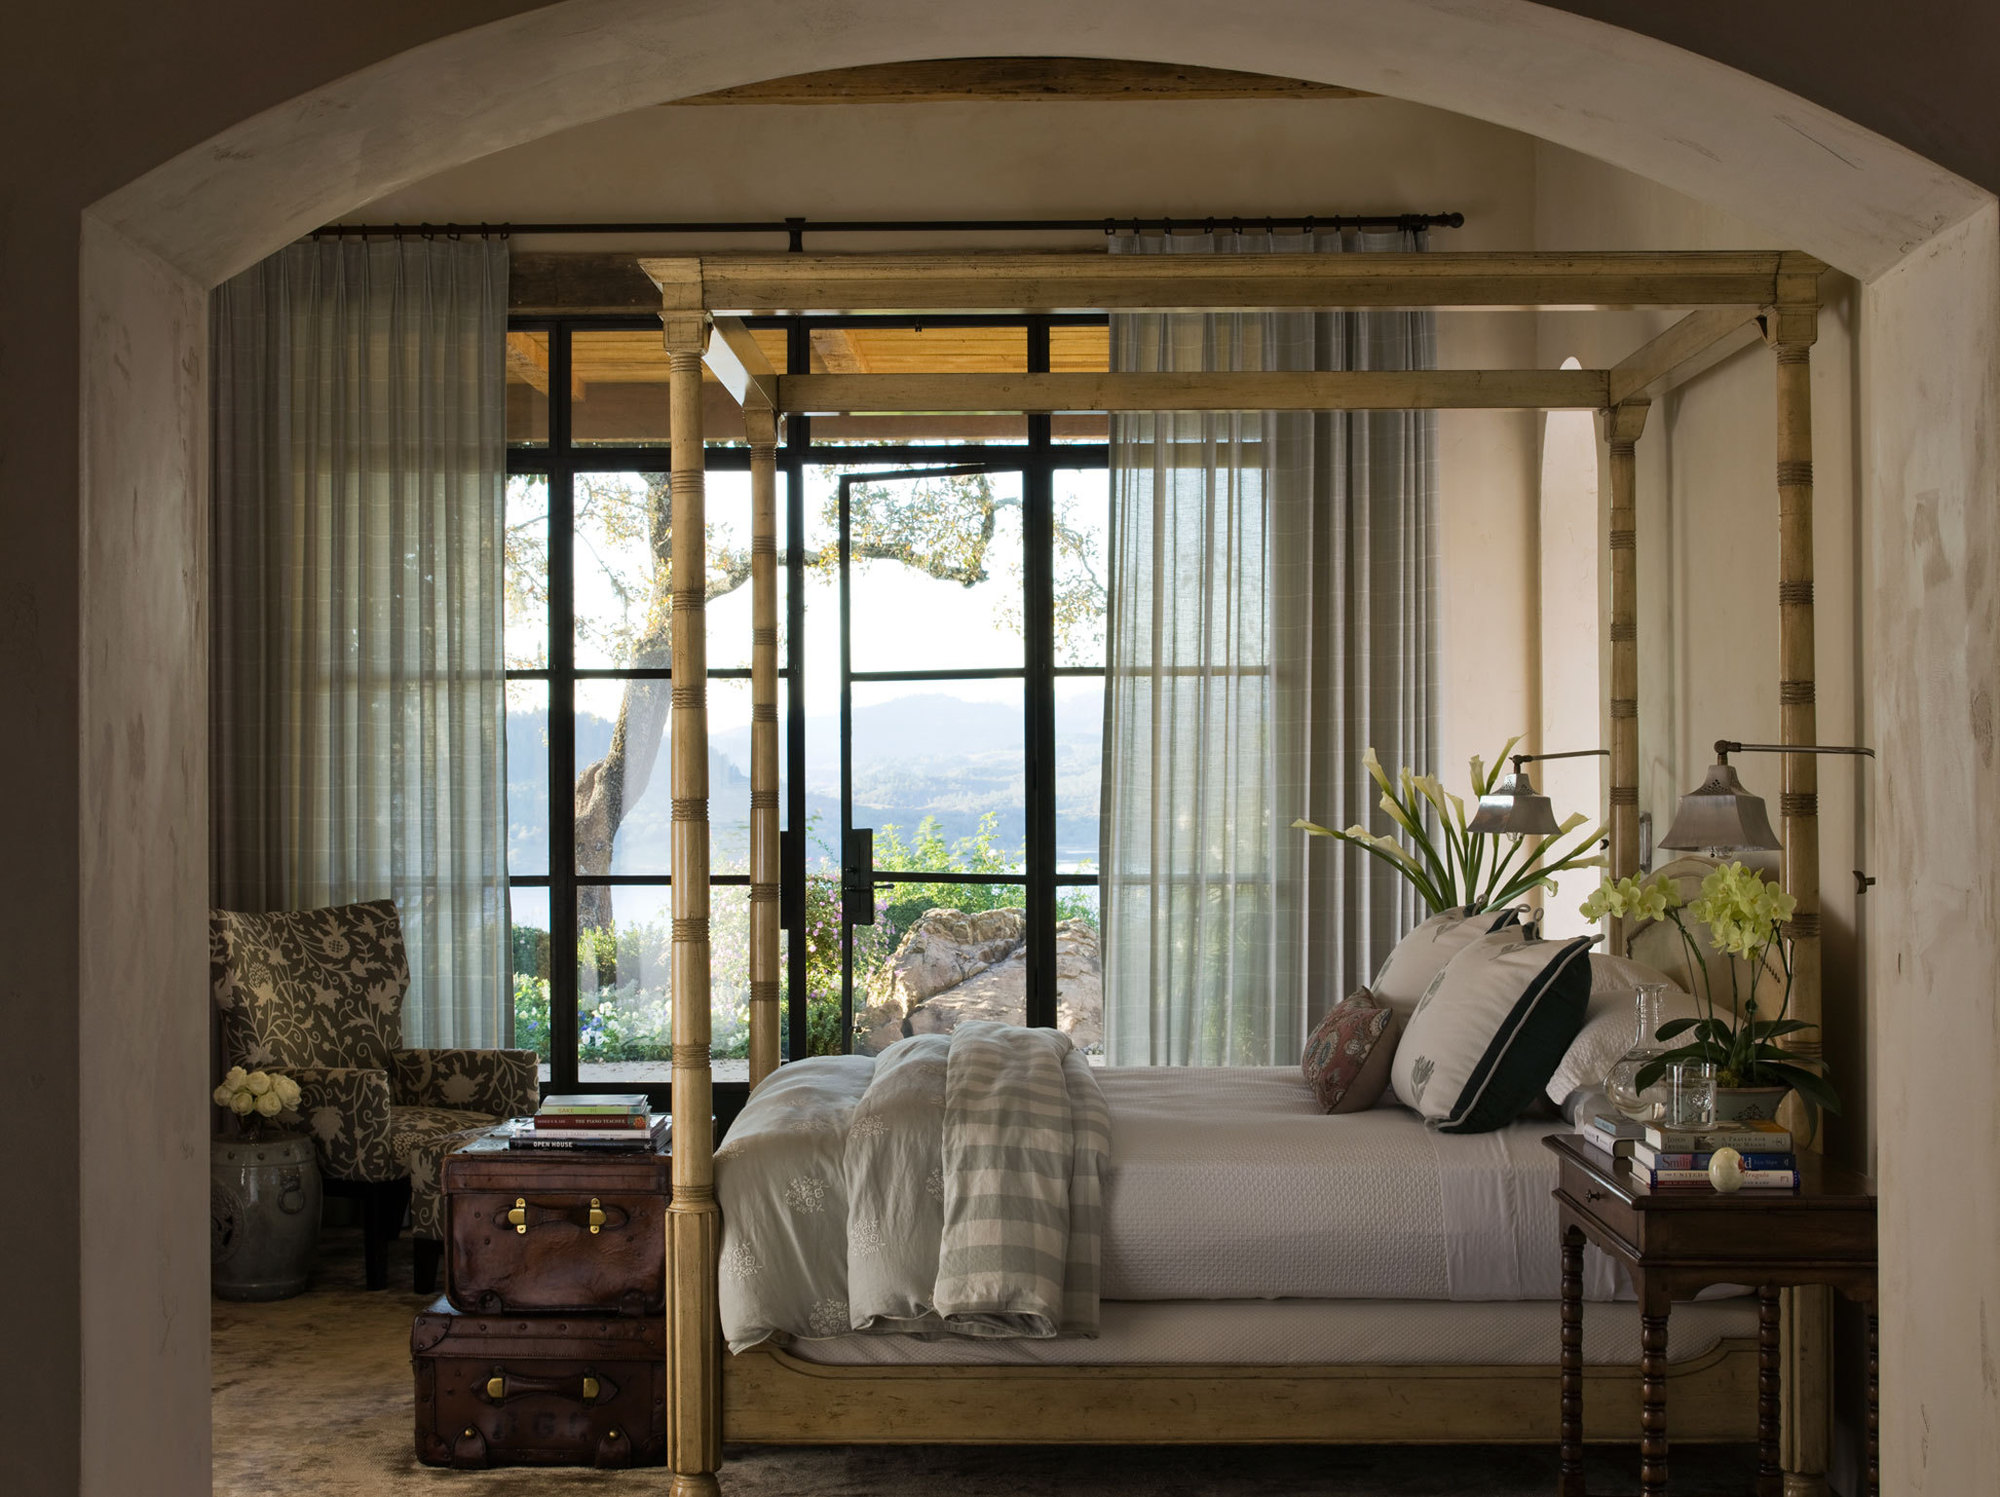 Napa Valley, California bedroom interior